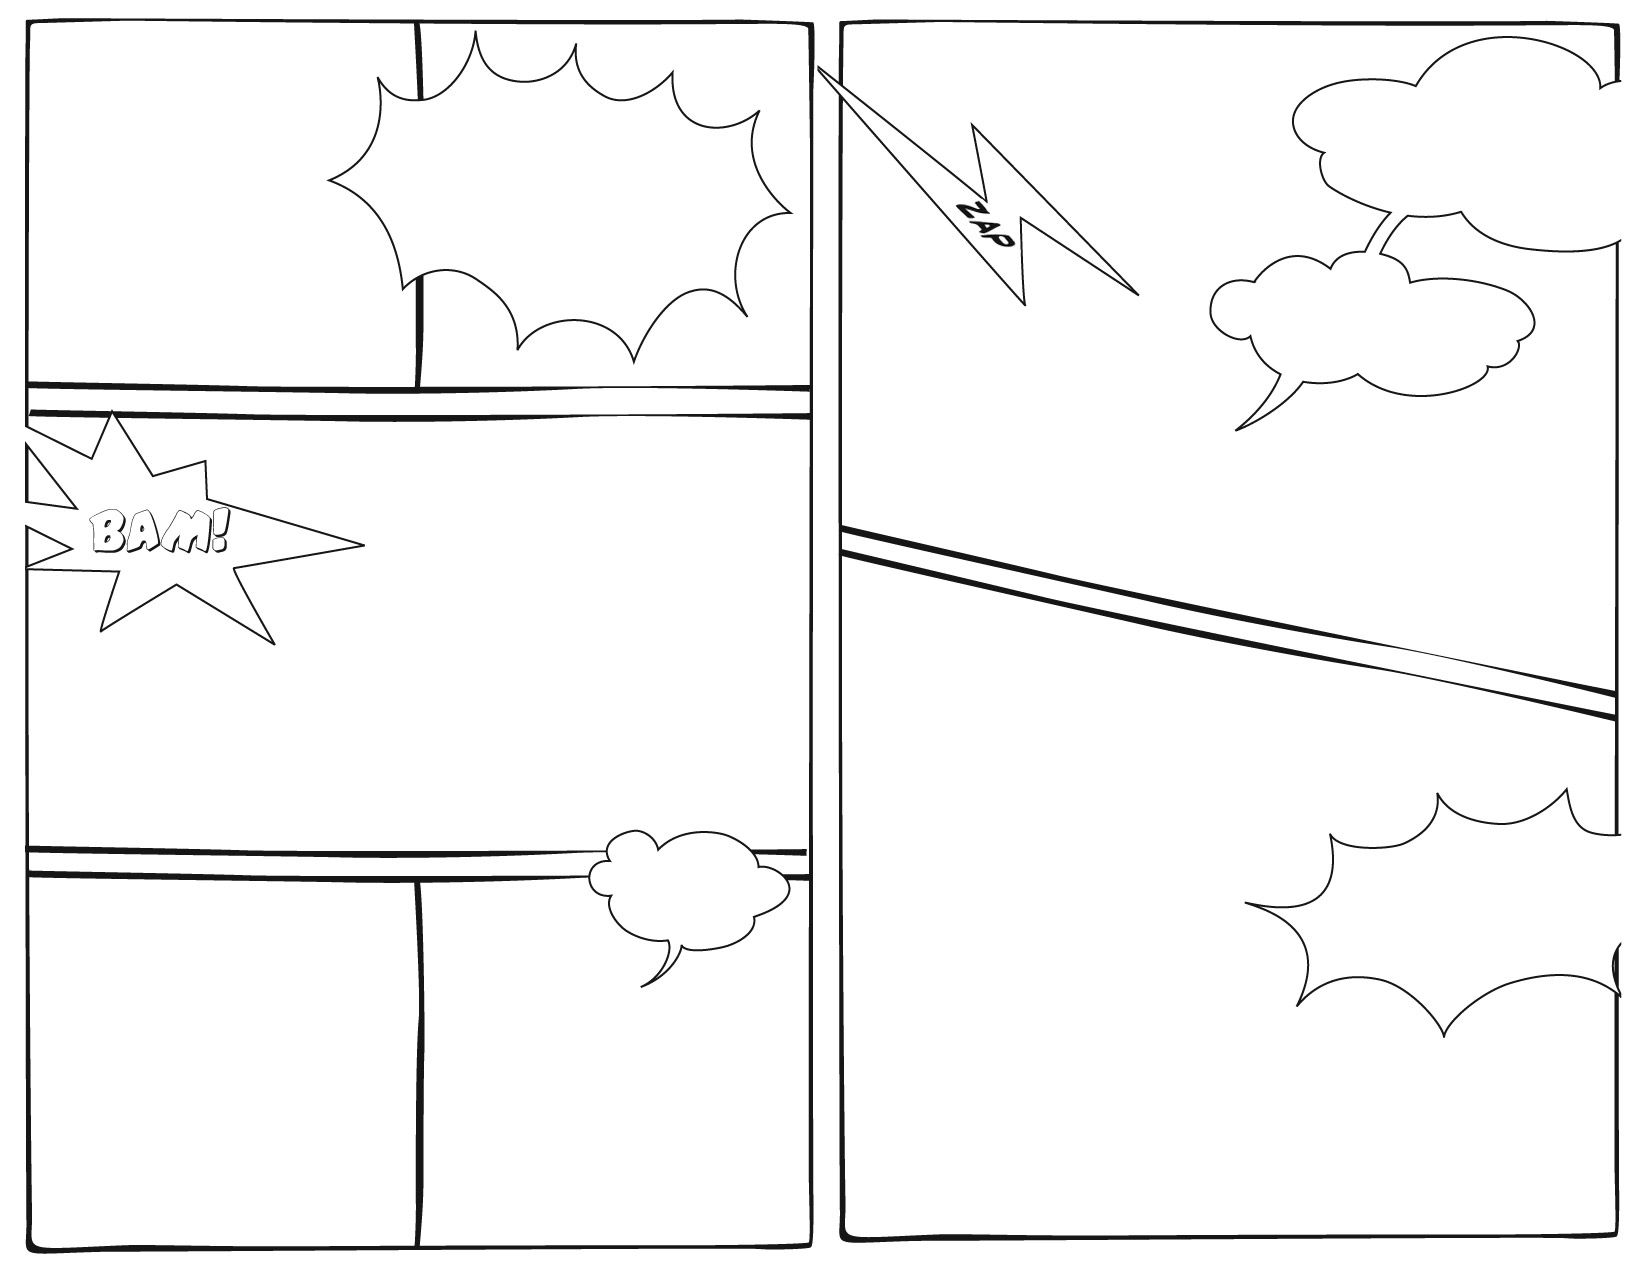 The Blank is a fictional character that appears in comic books – Comic Strip Template